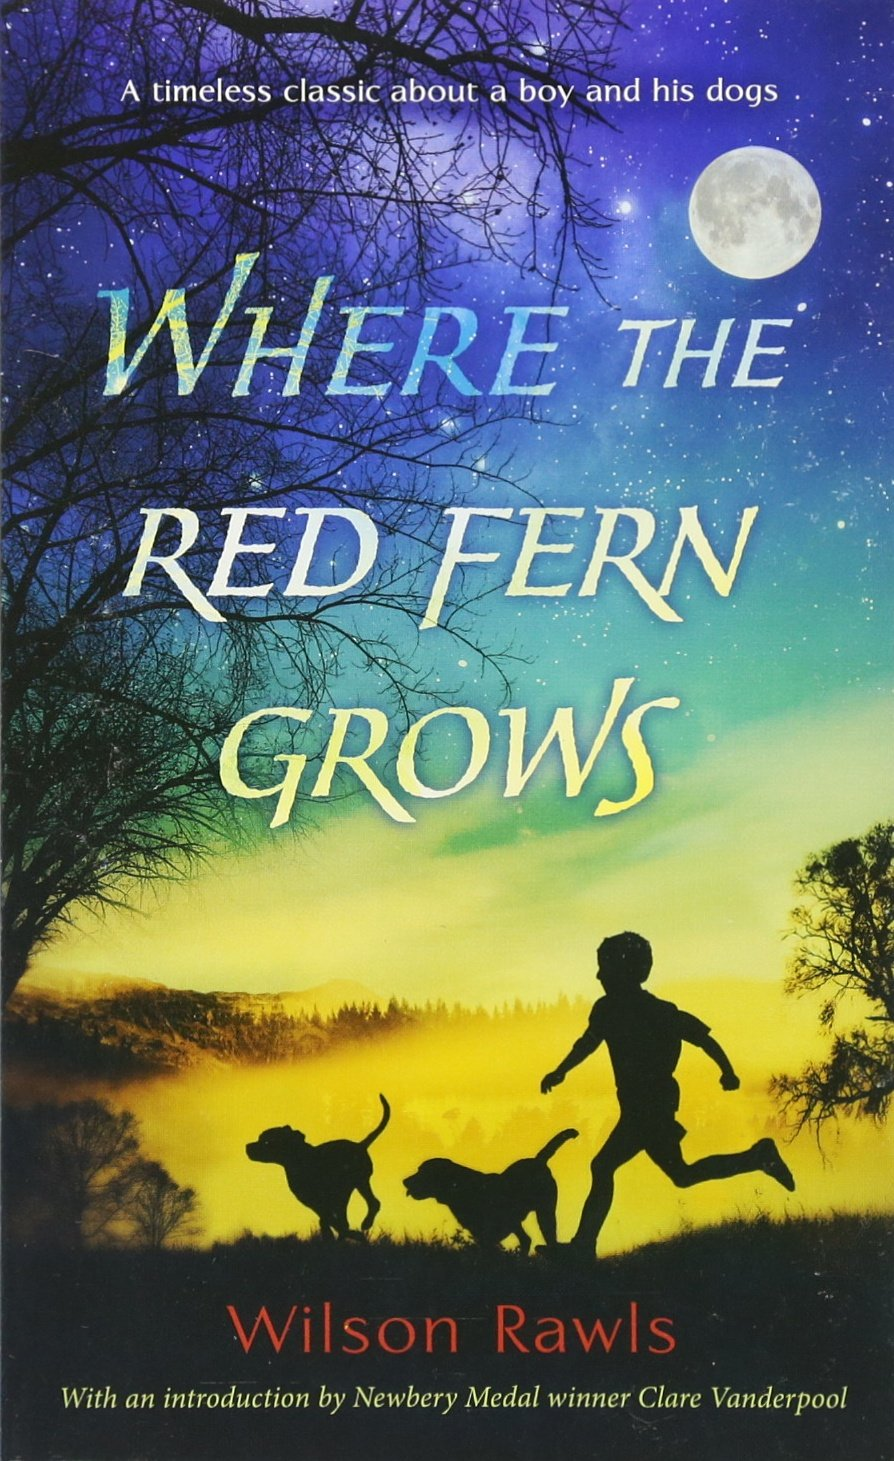 Where The Red Fern Grows: Wilson Rawls: 9780553274295: Amazon: Books